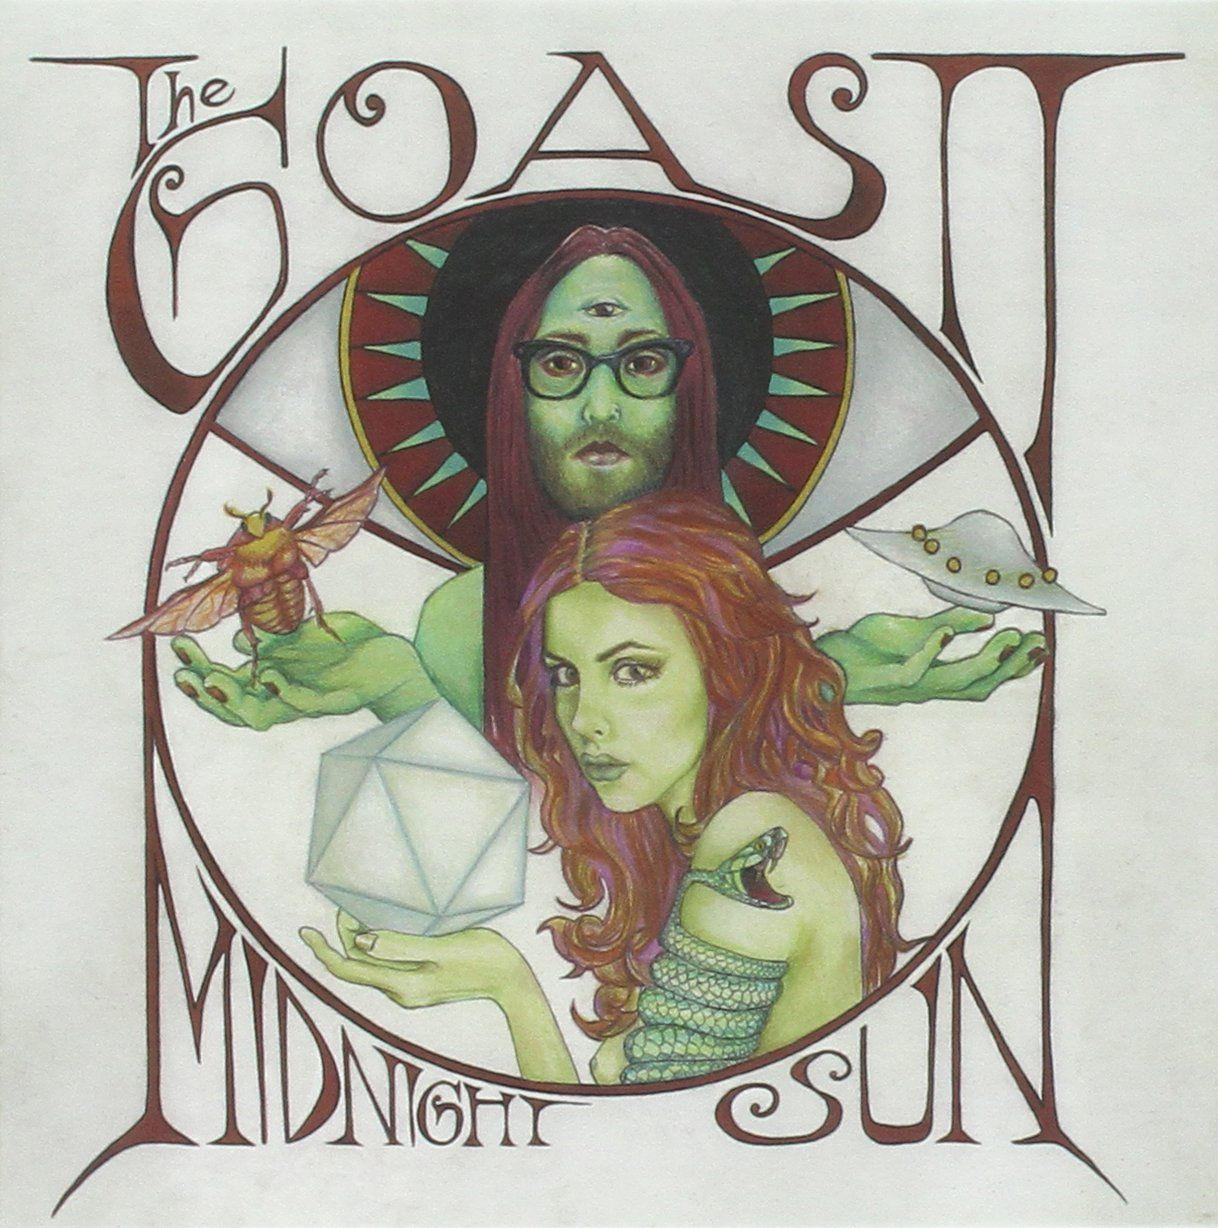 Midnight Sun by The Ghost of a Saber Tooth Tiger